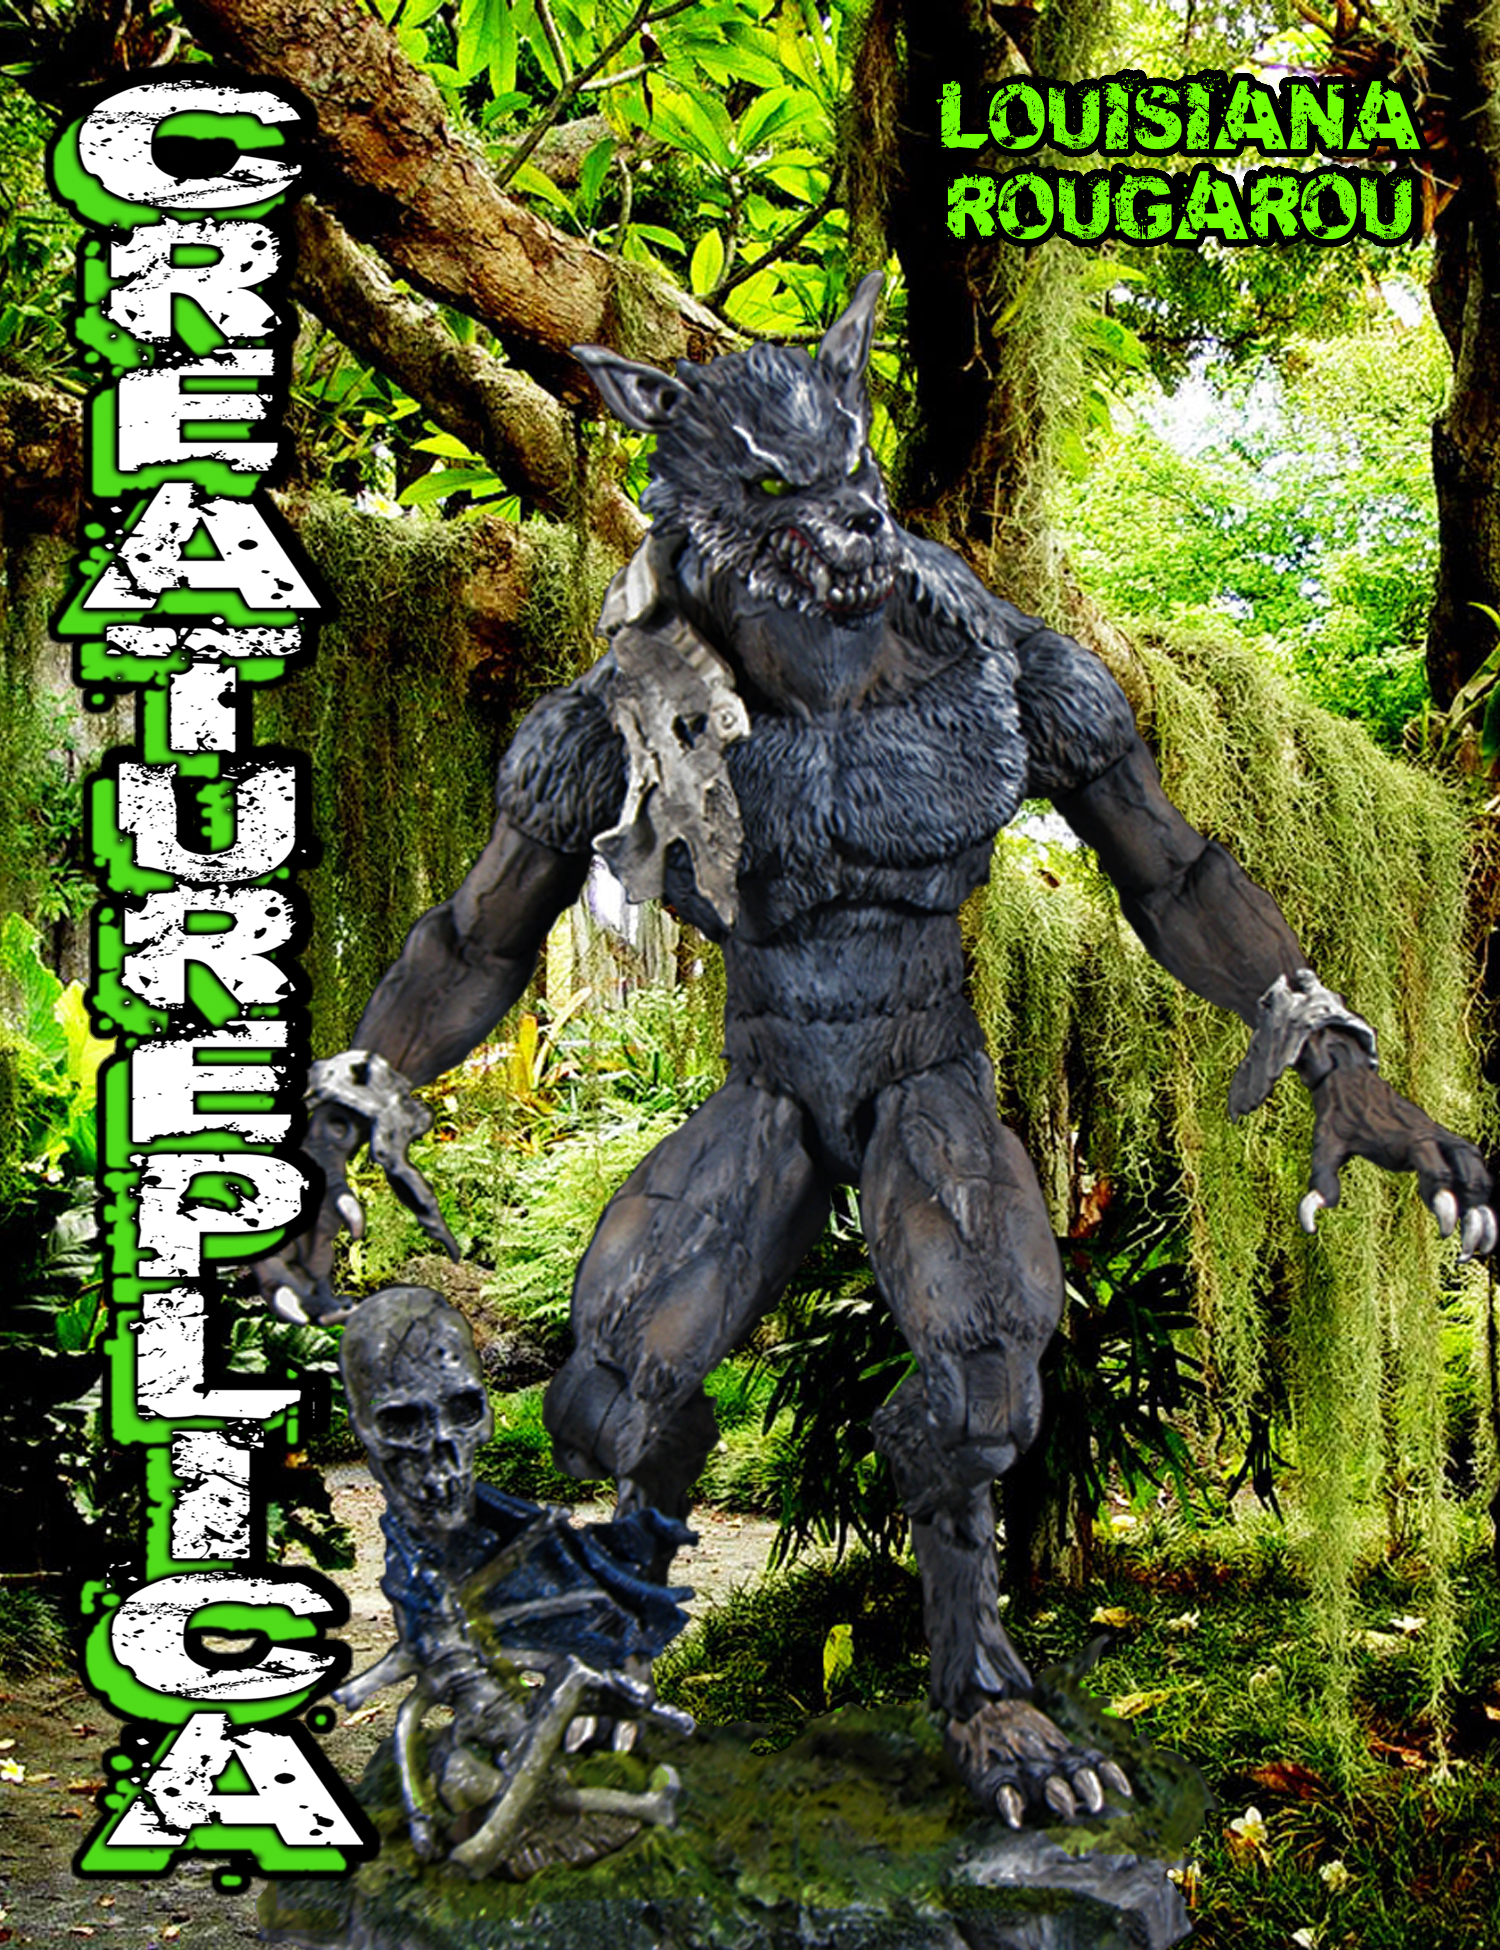 the rougarou Information and legends about the native american mythological figure rugaru (rougarou), shapeshifting werewolf of the metis people.